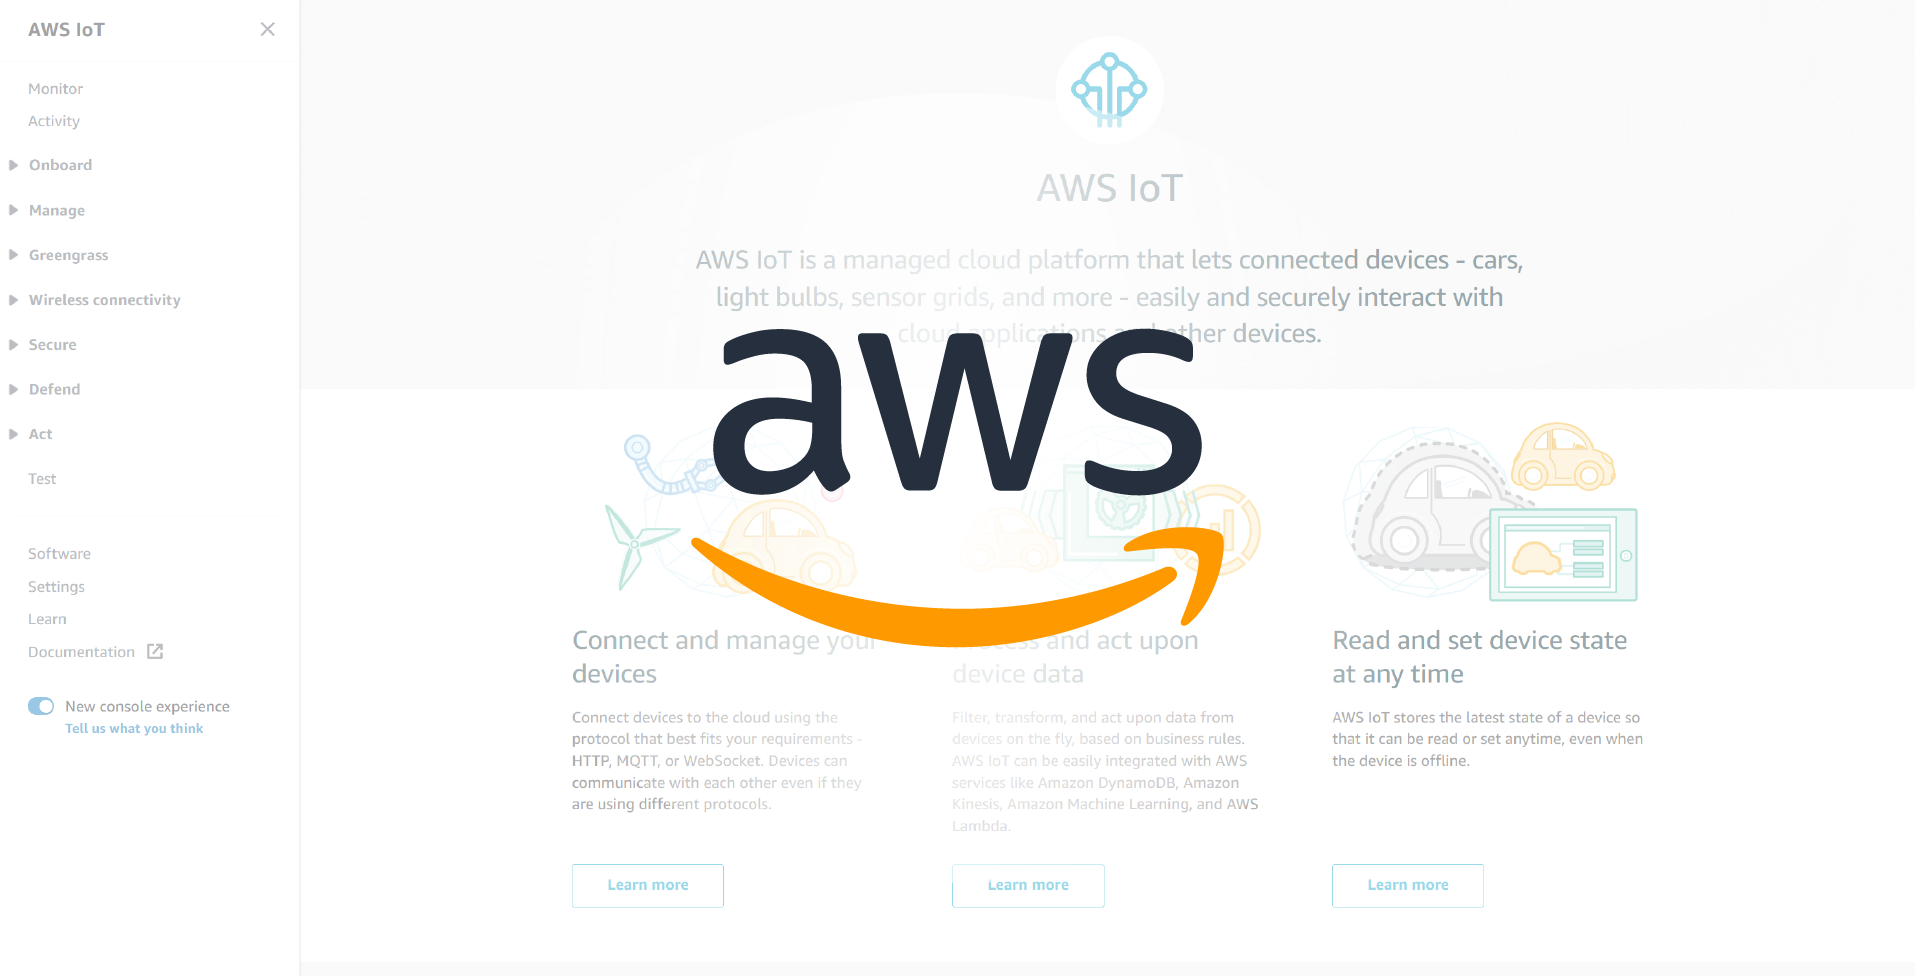 Configuring AWS IoT for Device Connections